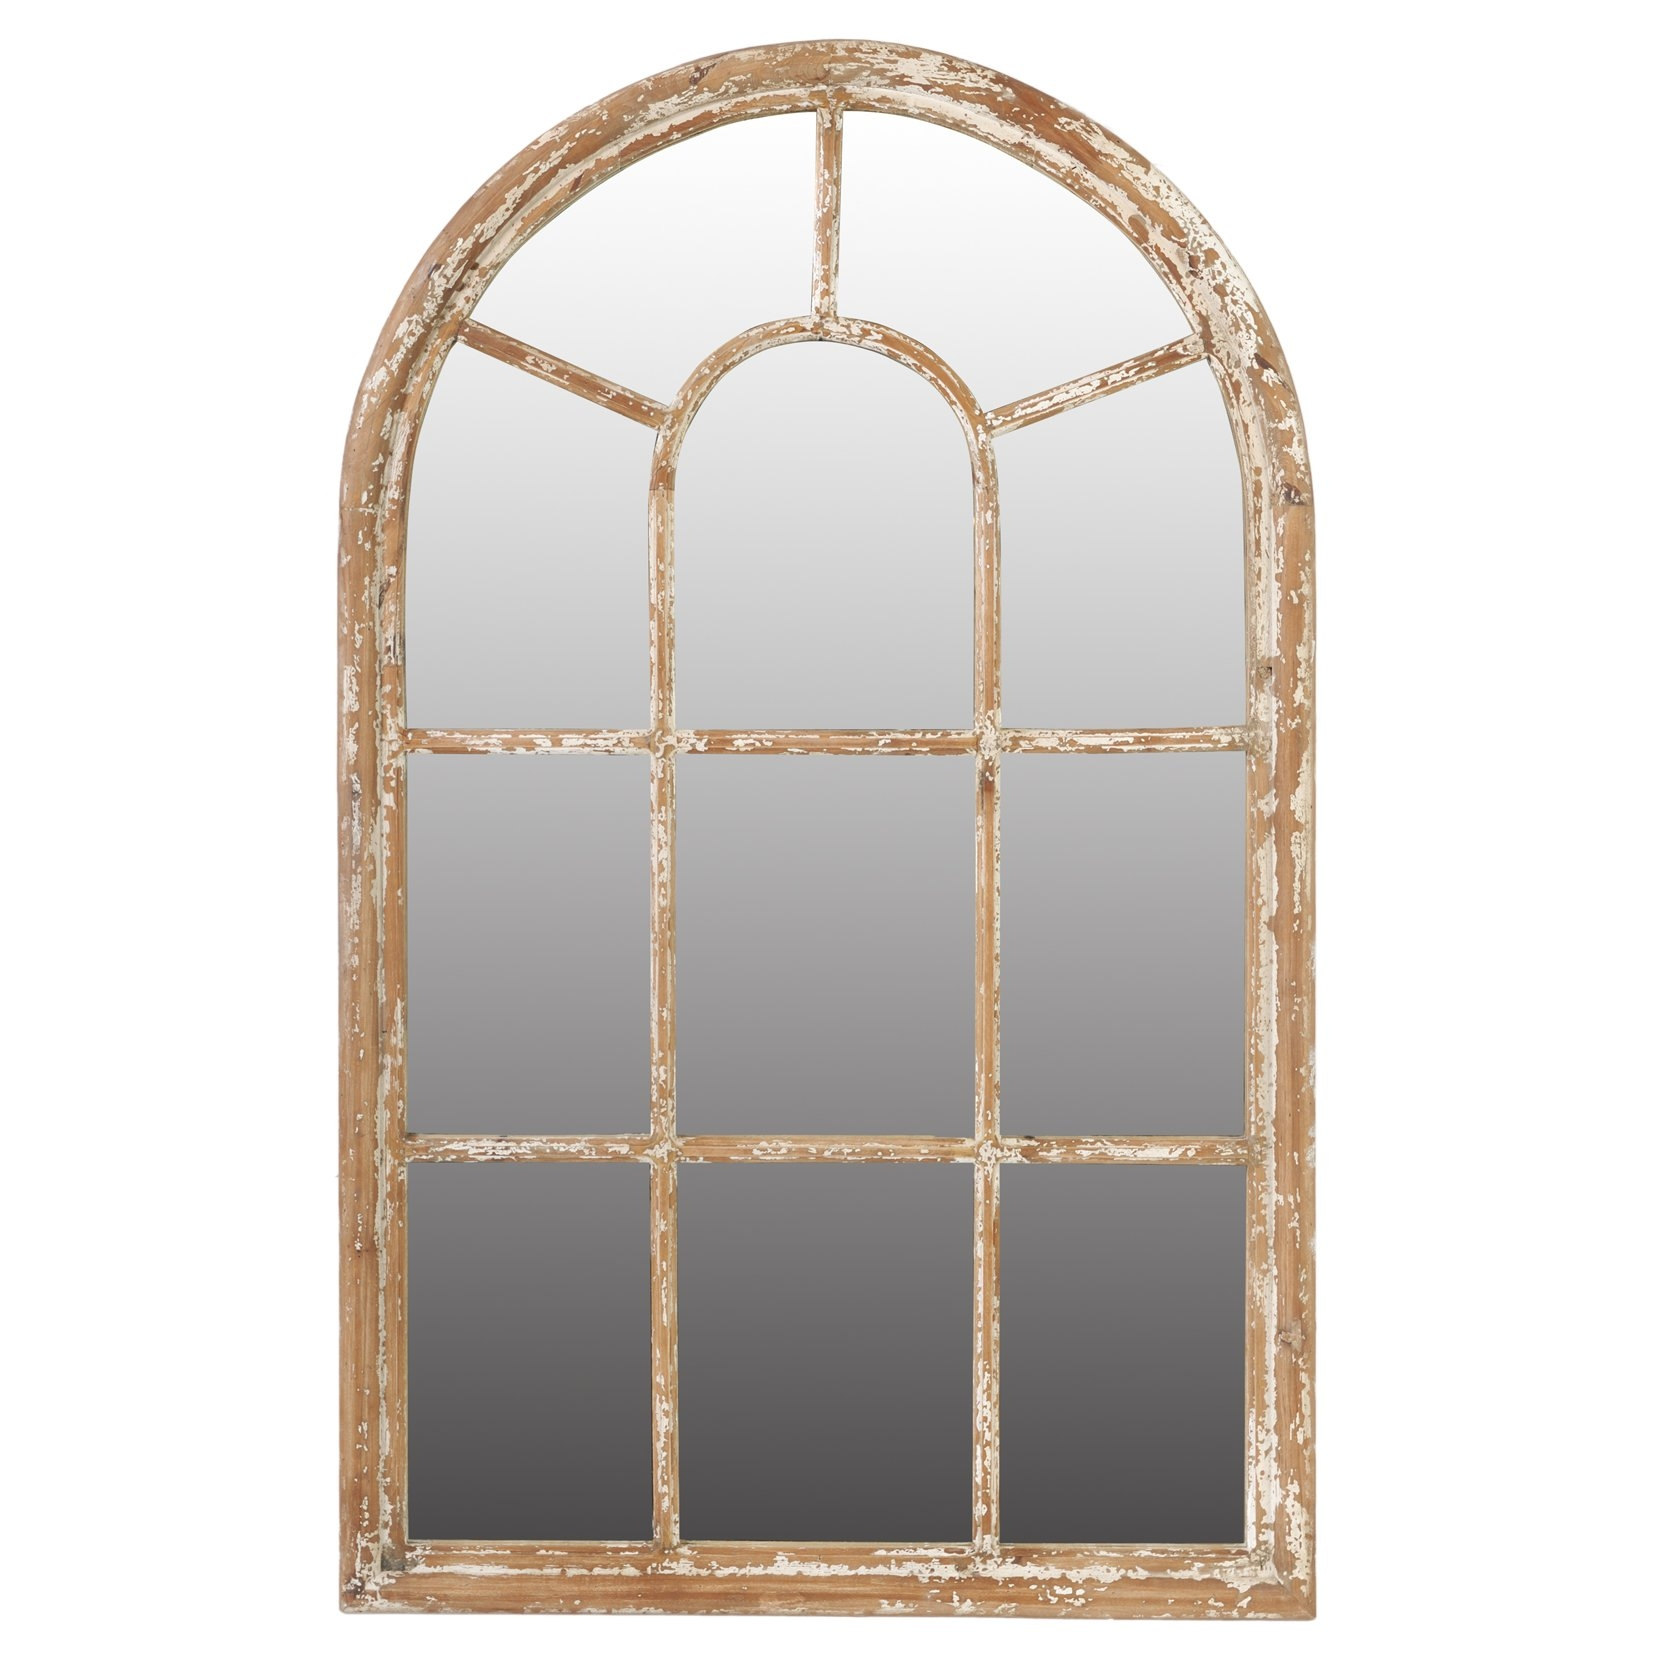 Laurel Foundry Modern Farmhouse Archcrowned Top Wall Mirror With Regard To Window Arch Mirror (Image 12 of 15)